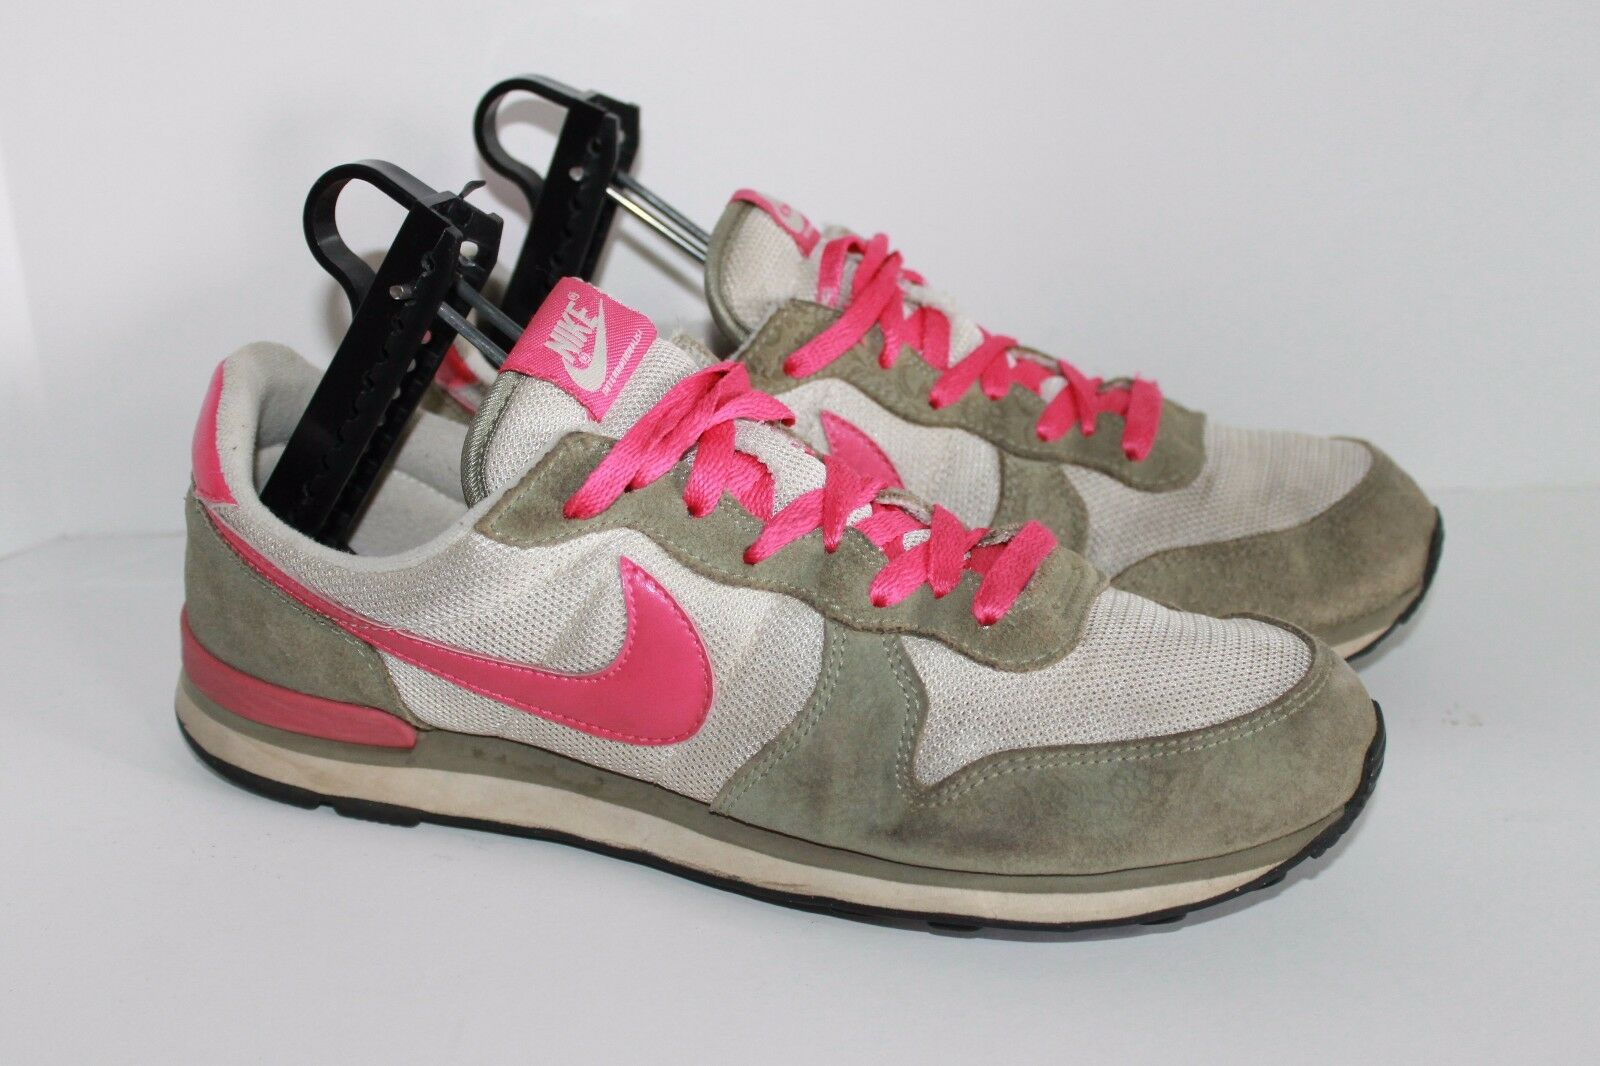 Womens Nike Internationalist  10 Running shoe Vintage Style Pink 2008 The most popular shoes for men and women